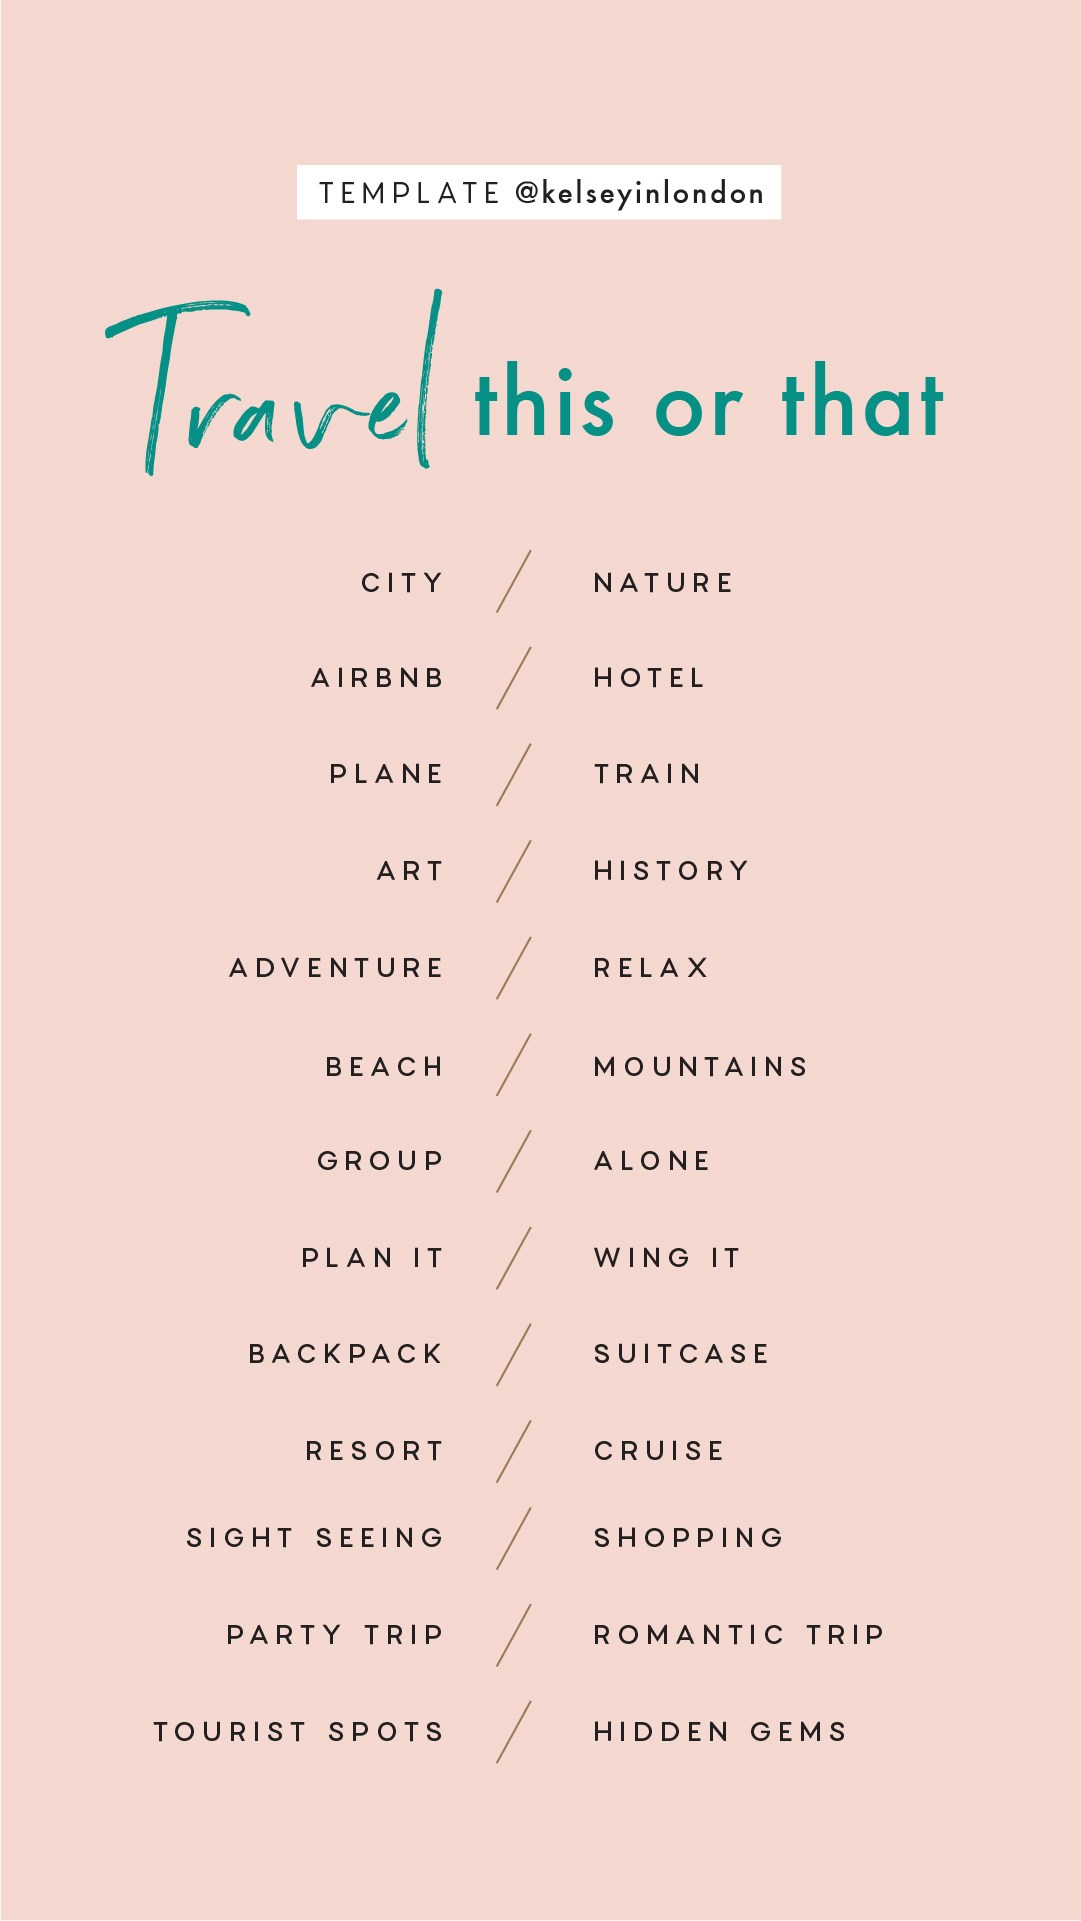 Instagram Story Templates - @kelseyinlondon Kelsey Heinrichs Travel bucket lists travel this or that travel quiz